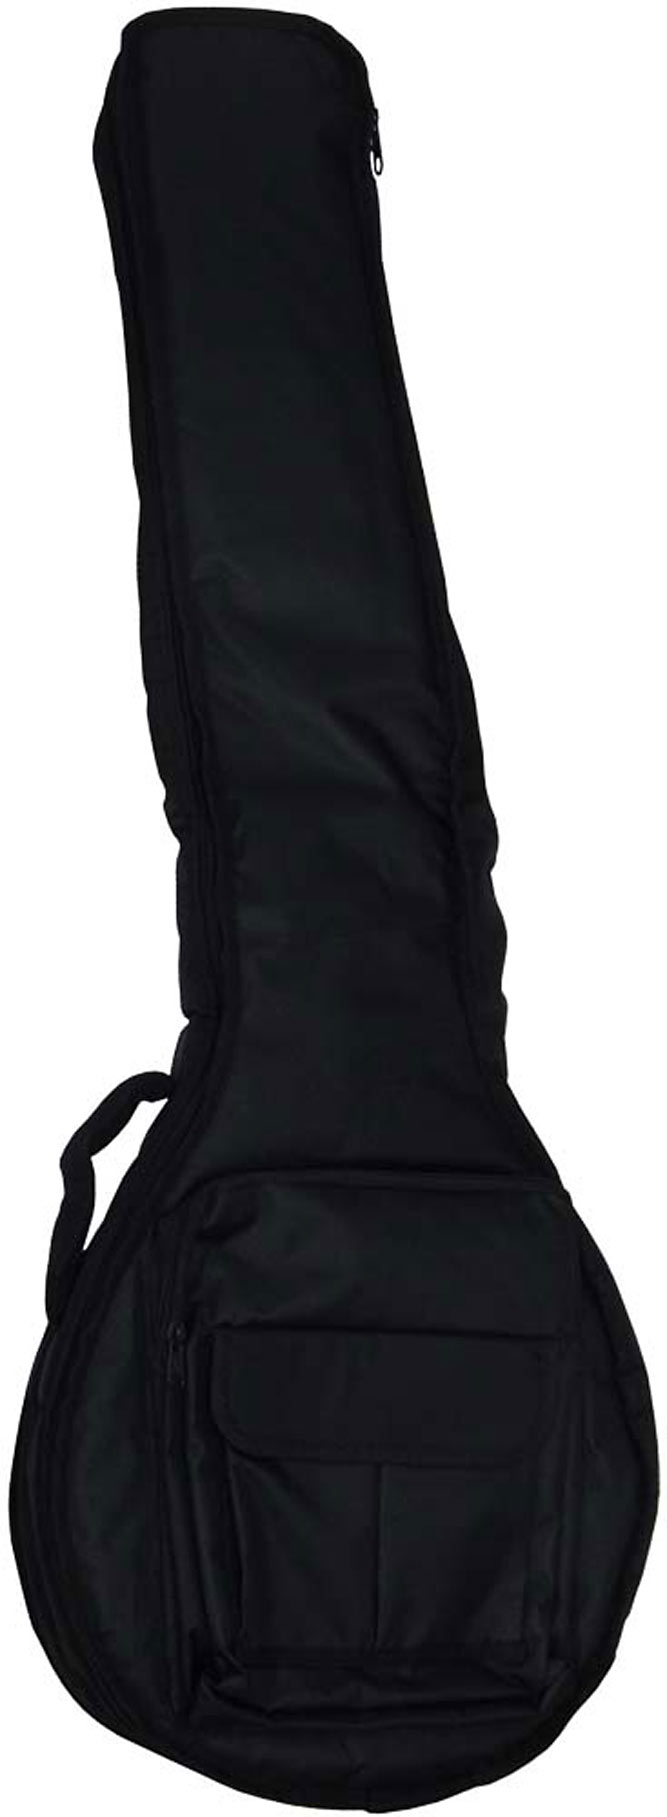 Ashbury Deluxe 5St Open Back Banjo Bag Tough black nylon outer with 20mm padding.